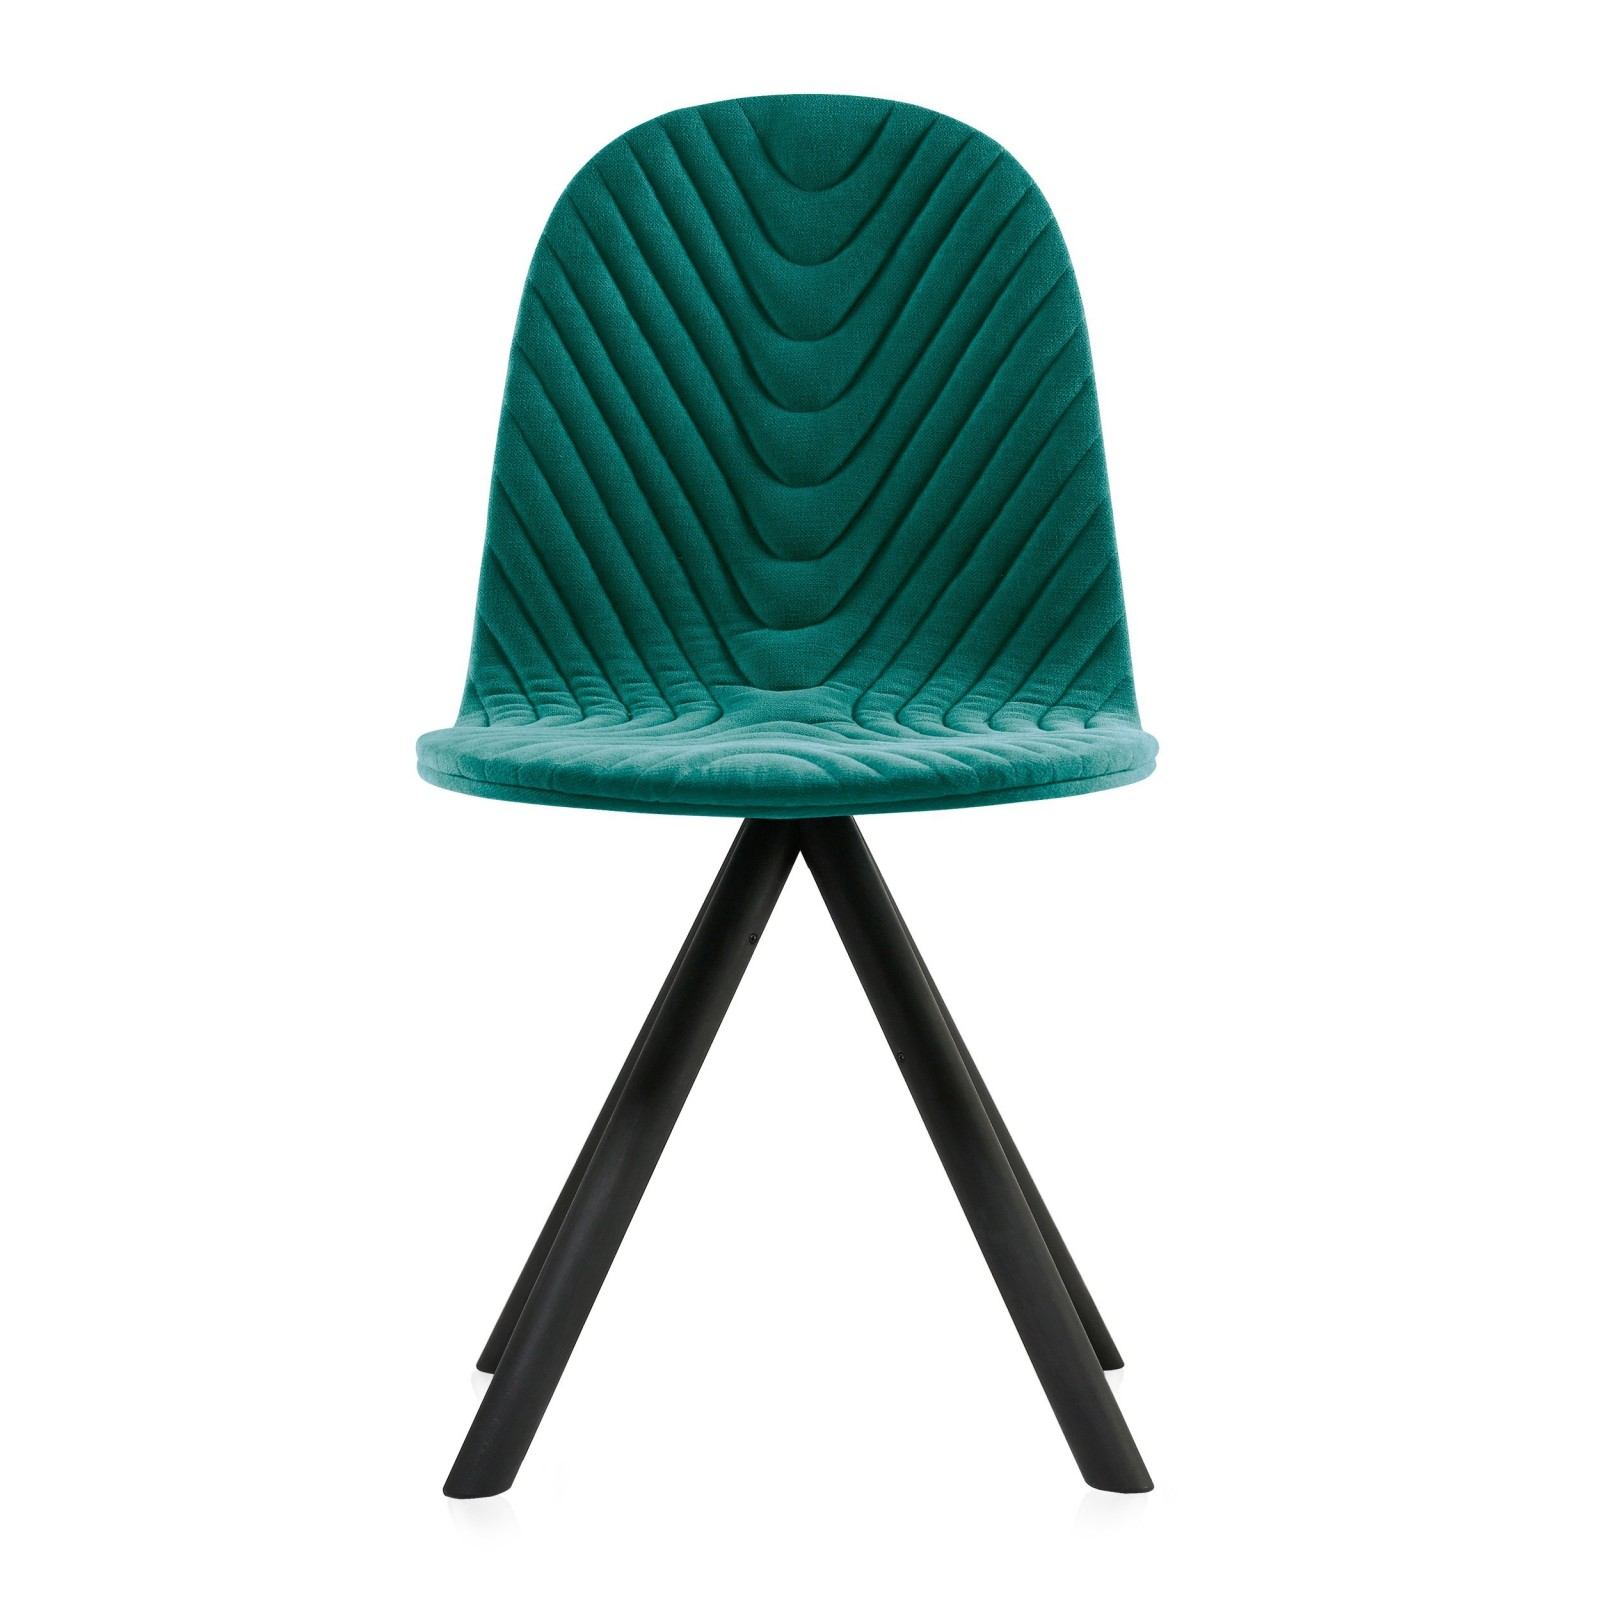 Mannequin chair - 01 - turquoise